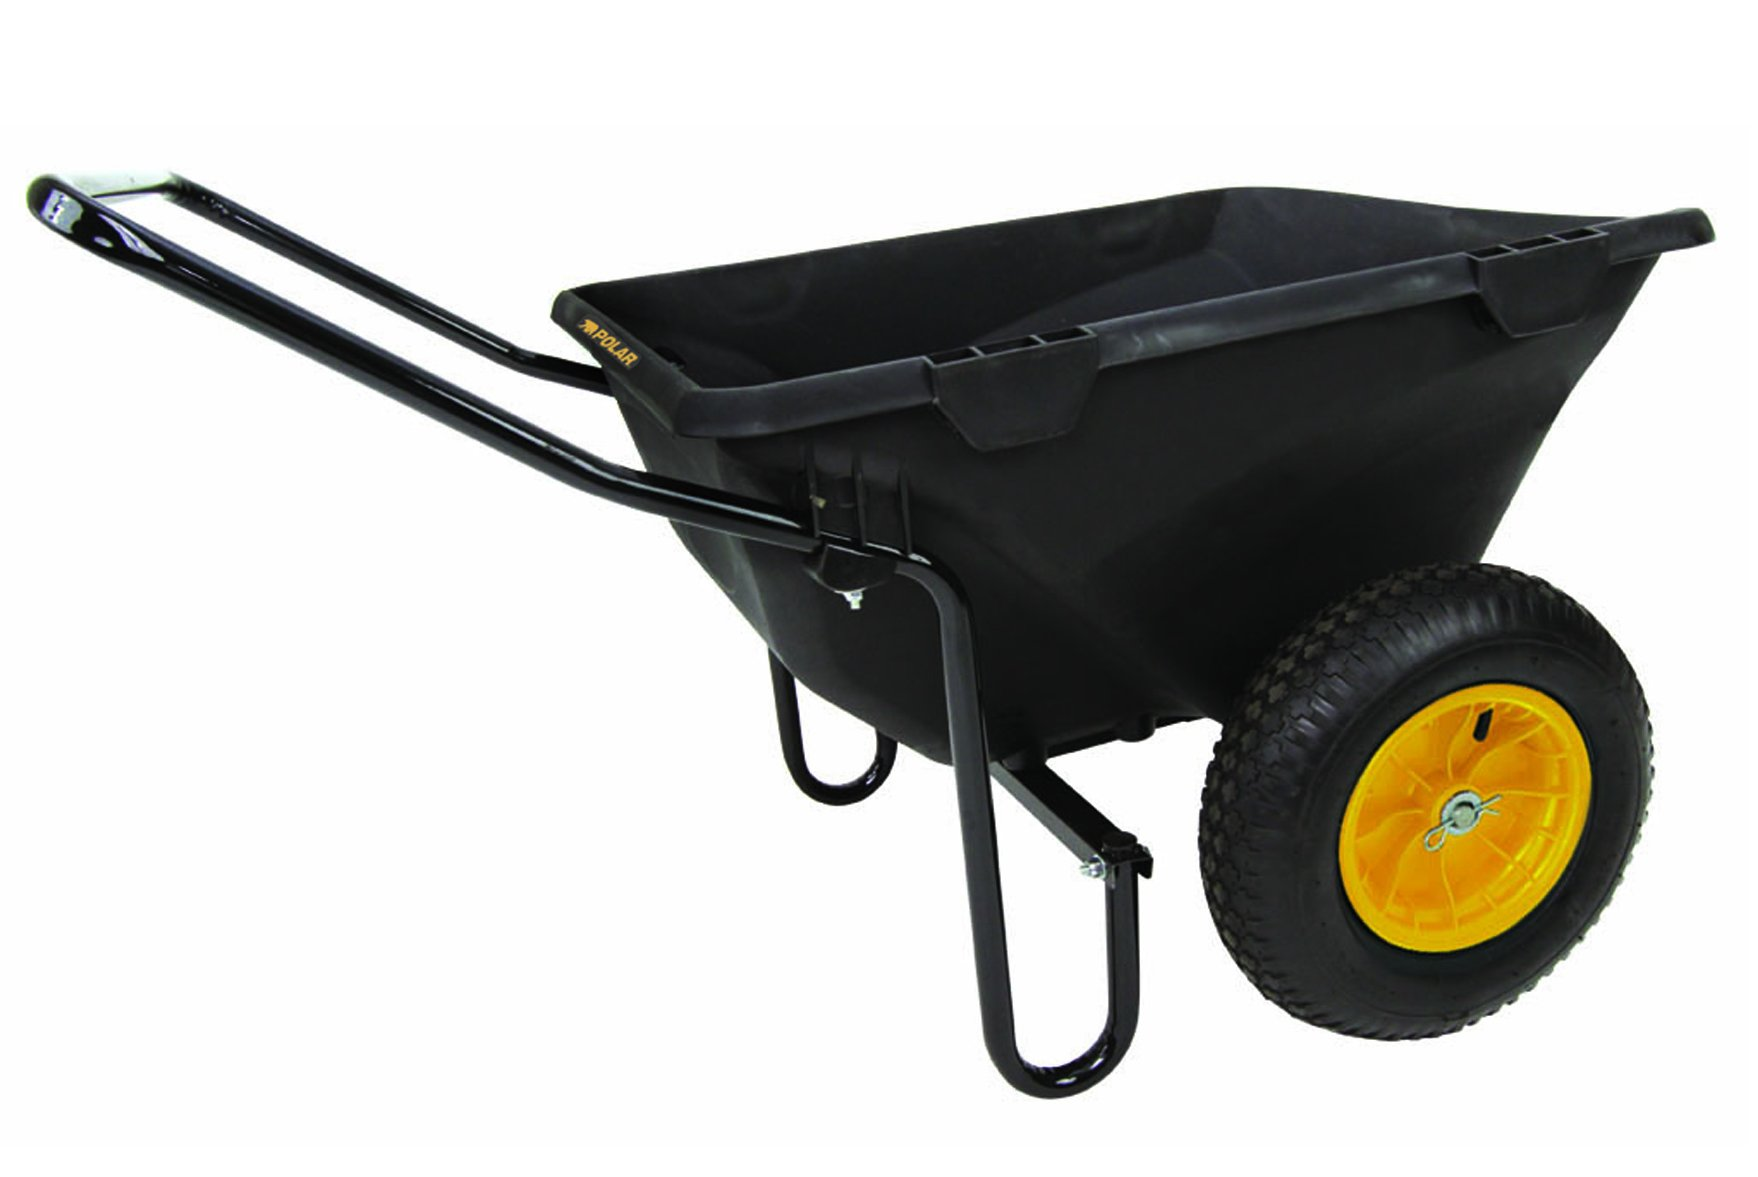 Polar Trailer 8449 Heavy Duty Cub Cart, 50 x 28 x 29-Inch 400 Lbs Load Capacity 7 Cubic Feet Tub Rugged Wide-Track Tires Utility and Hauling Cart, Black by Polar Trailer